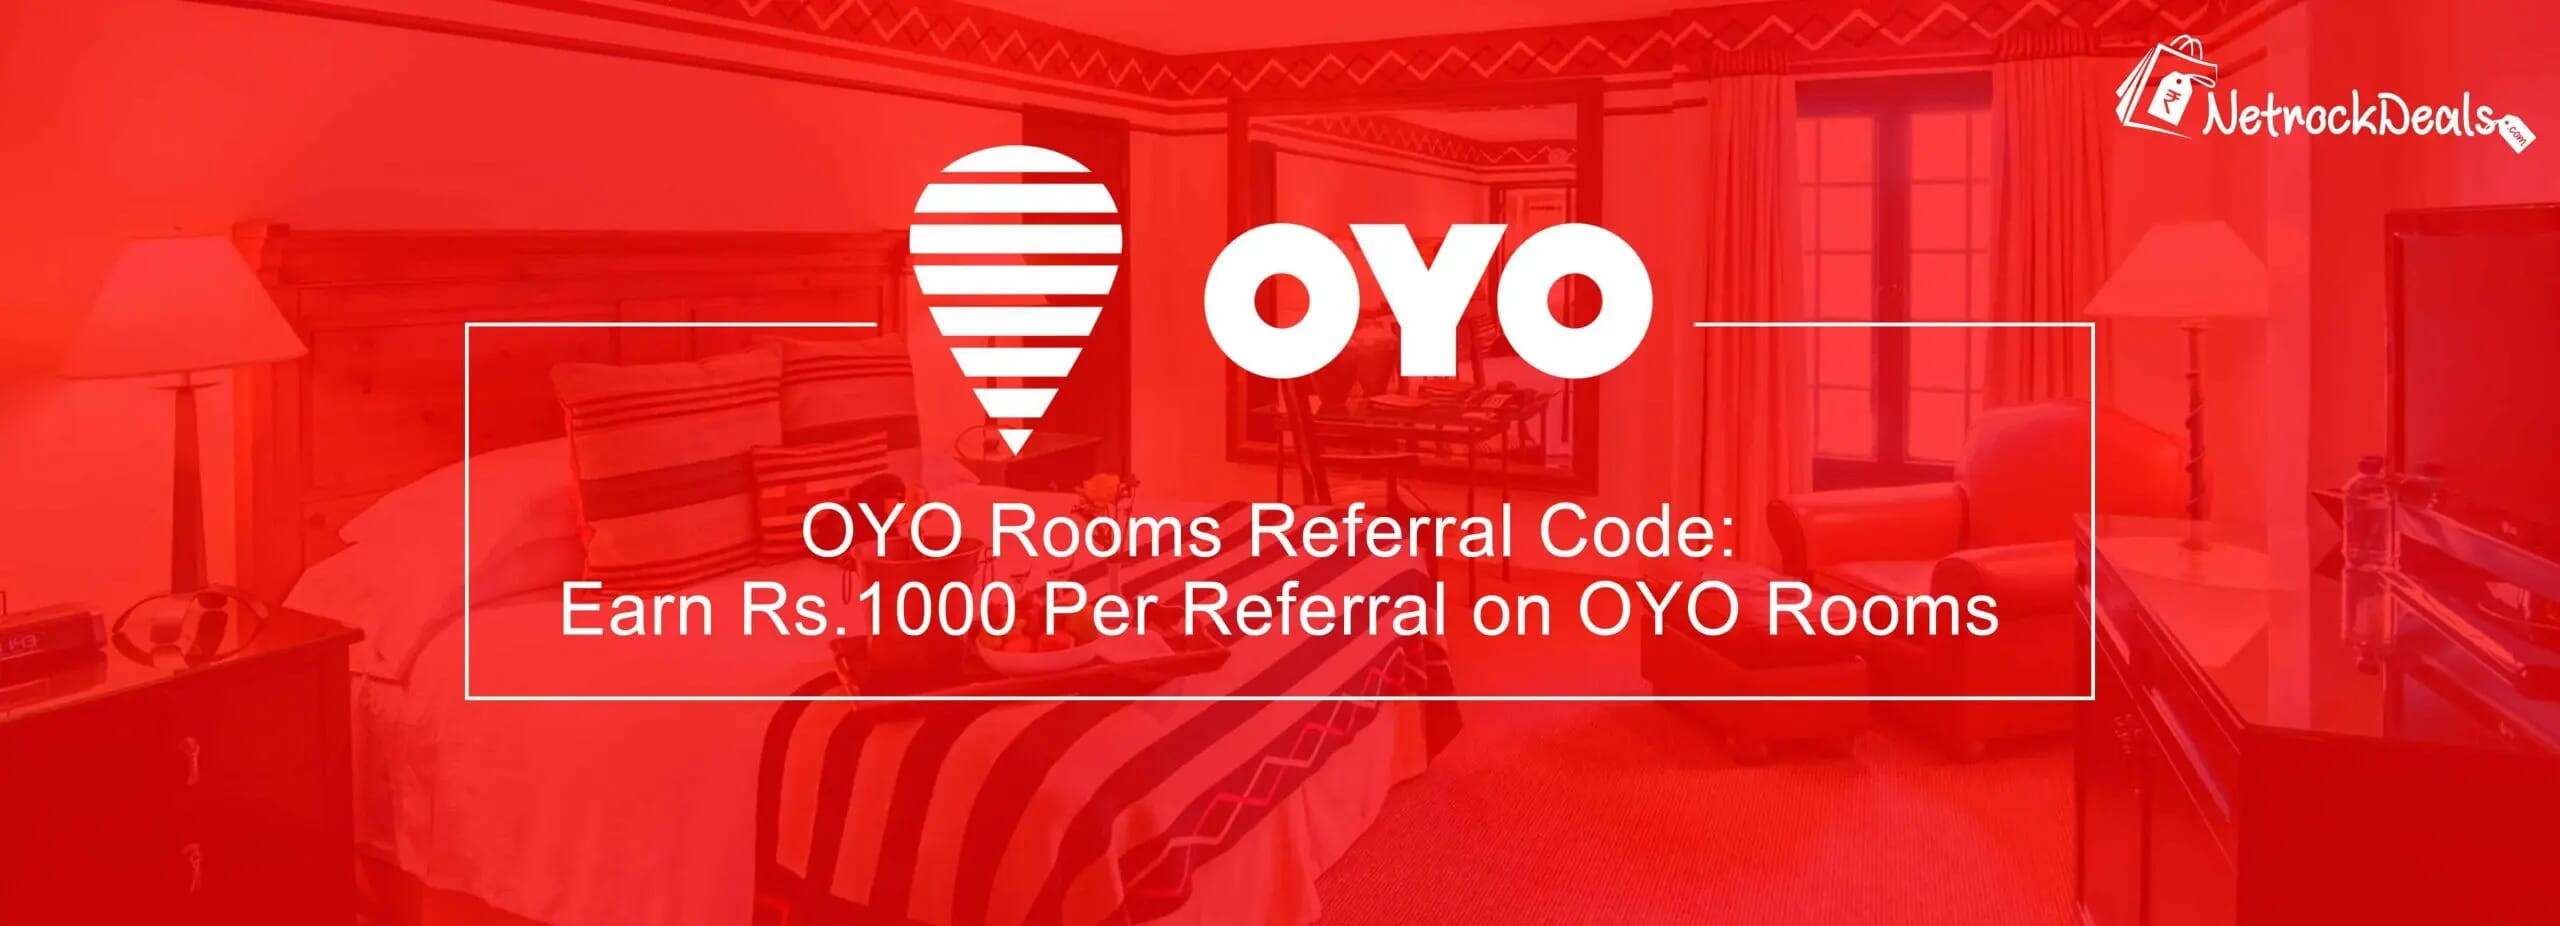 Netrockdeals oyo referral code